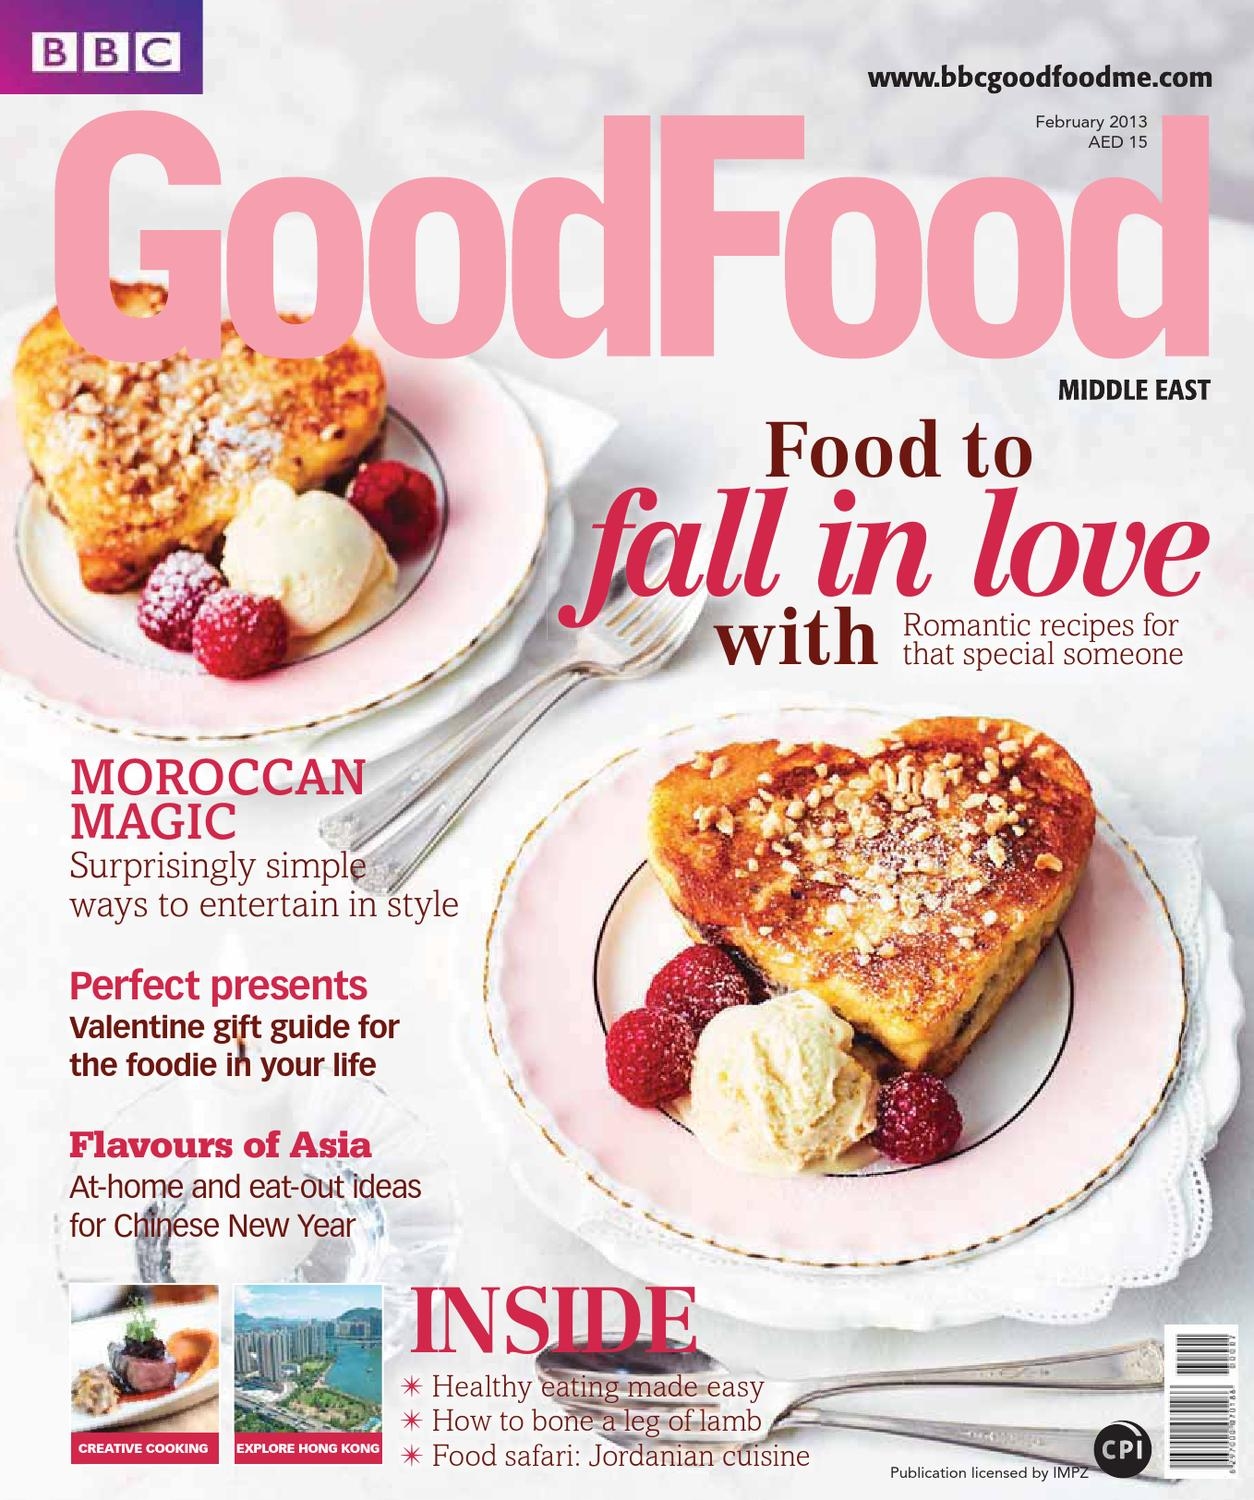 Bbc Good Food Middle East Magazine  February 2013 By Bbc Good Food Me   Issuu